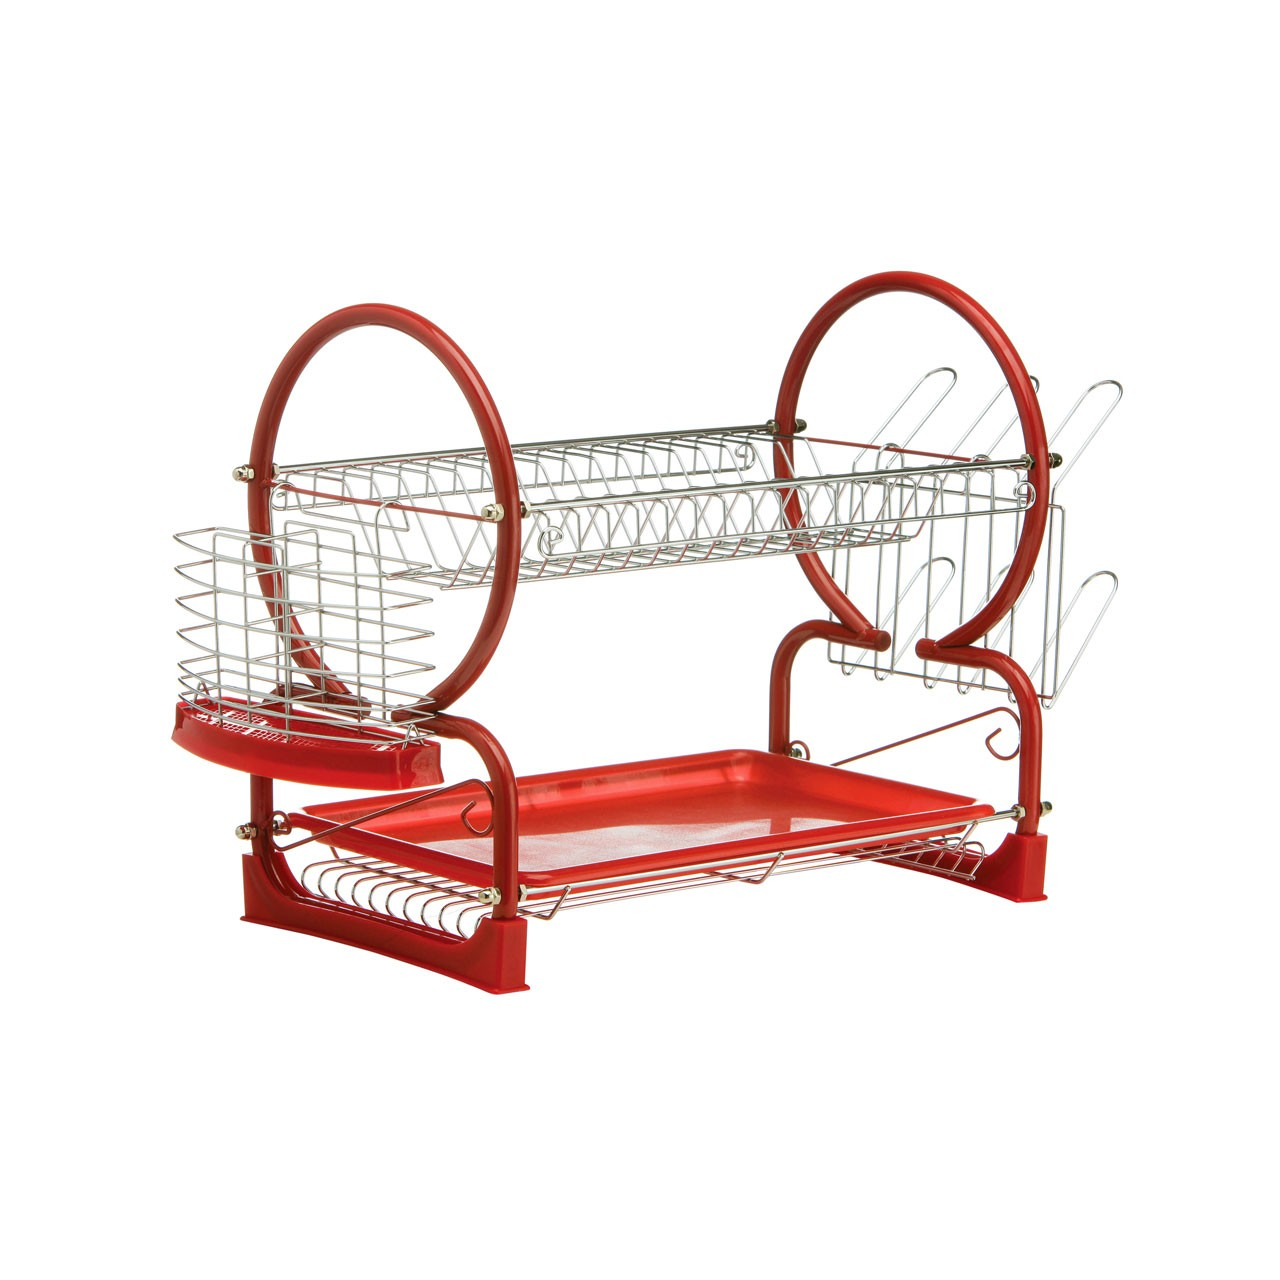 Prime Furnishing 2-Tier Dish Drainer - Red